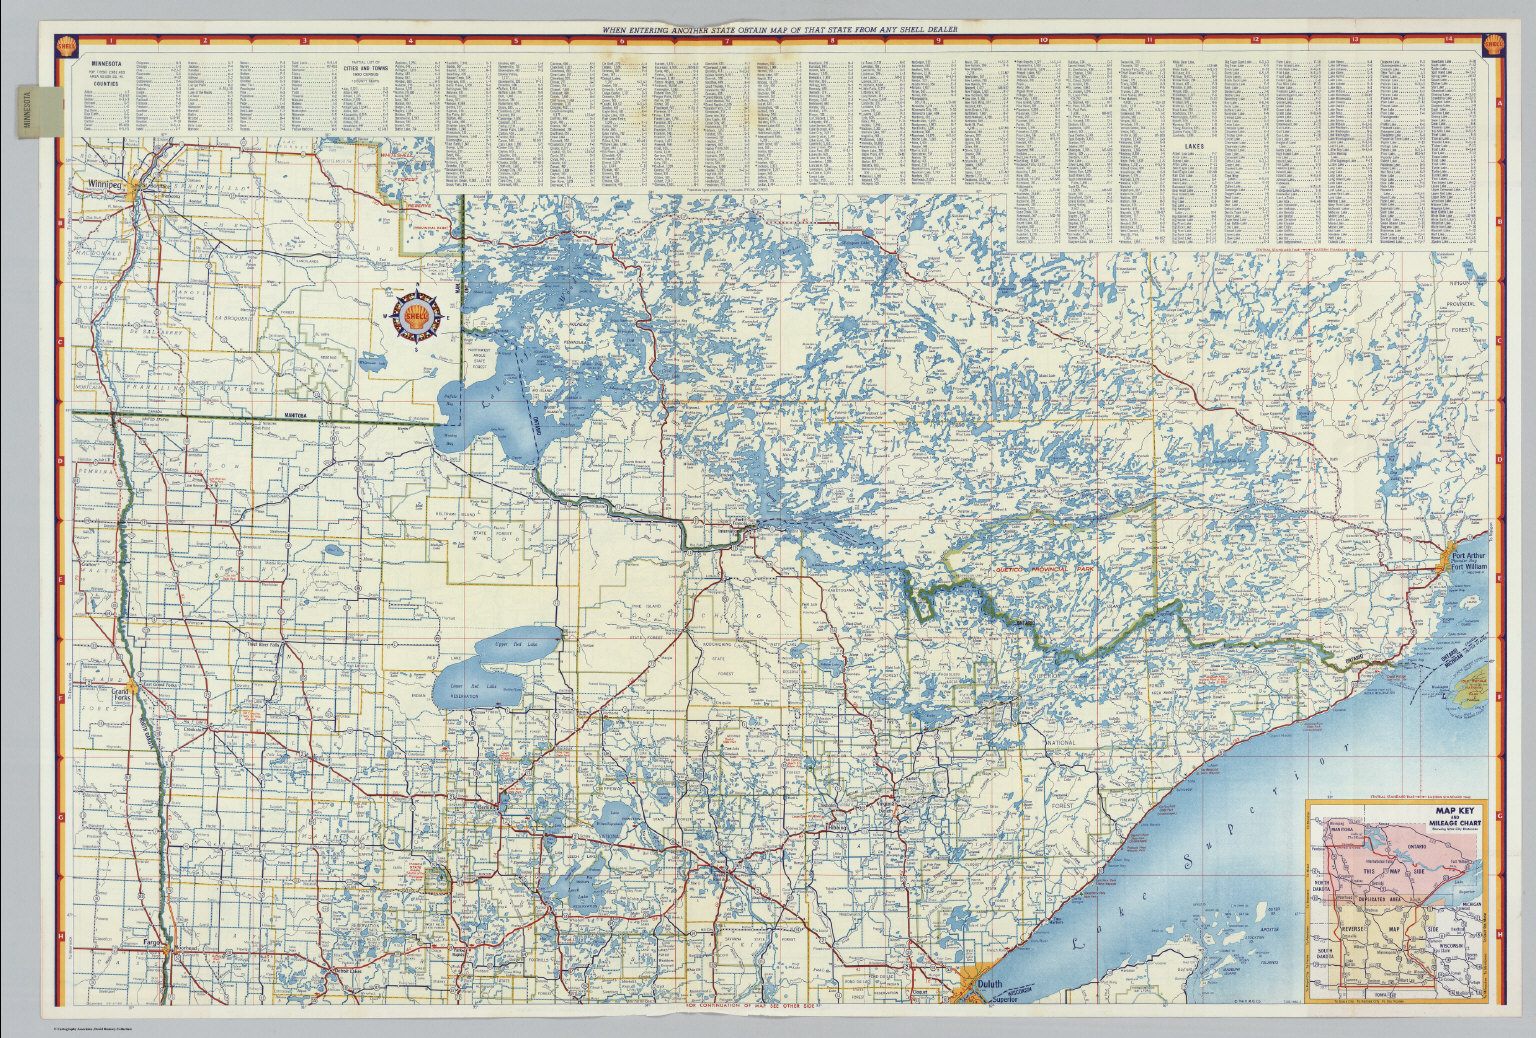 Shell Highway Map Of Minnesota Southern Portion David Rumsey - Minnesota highway map